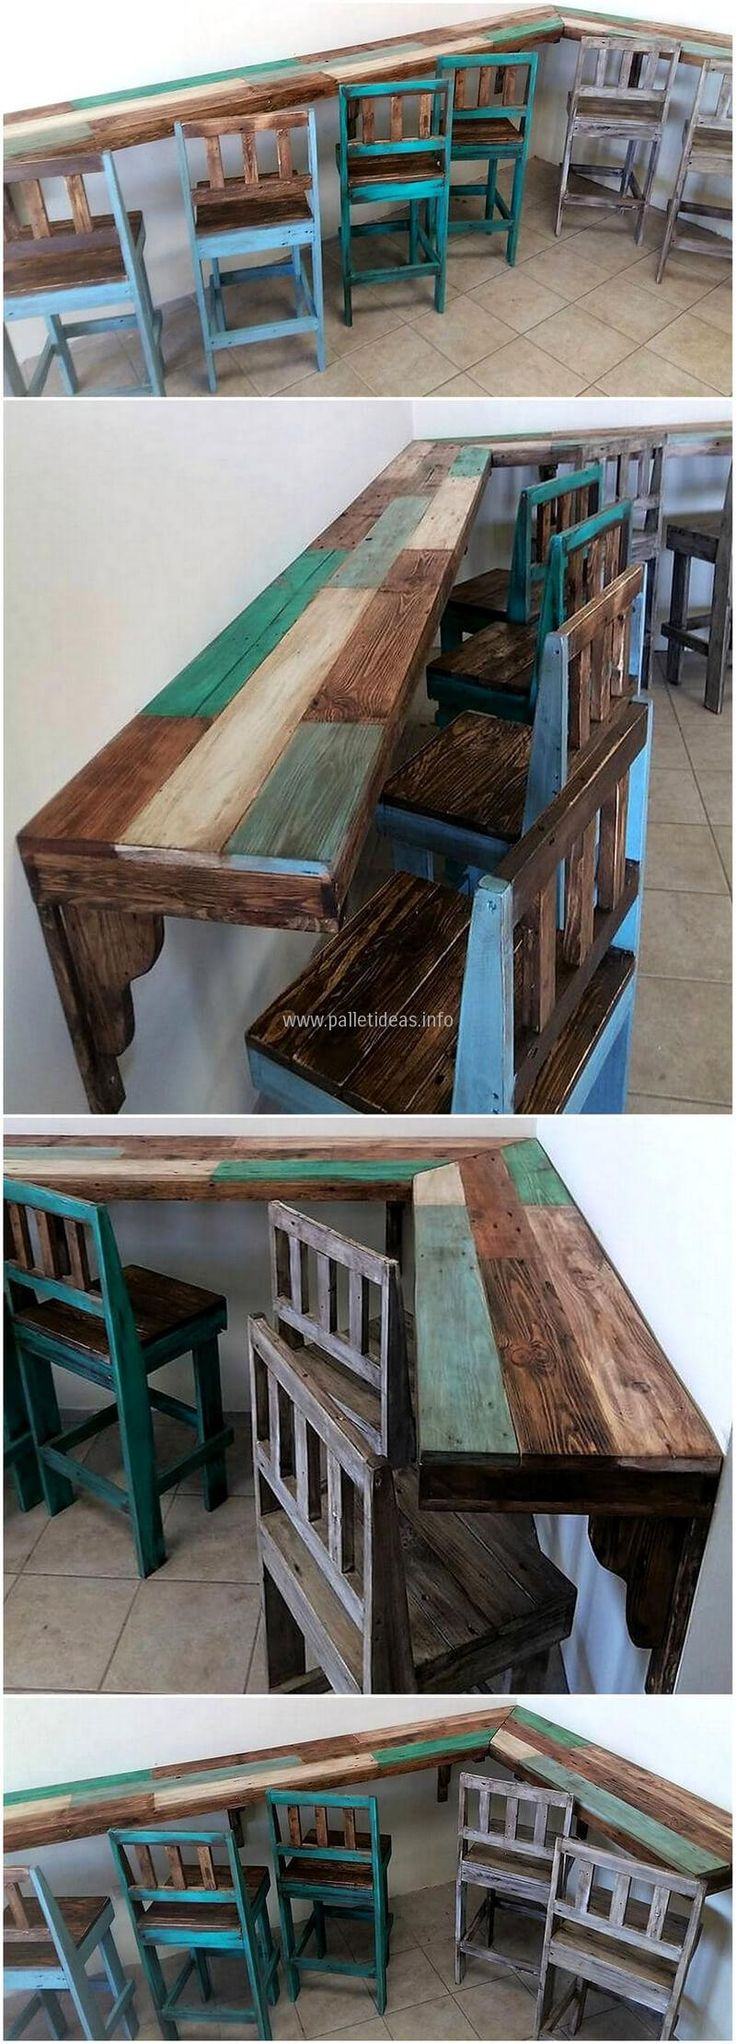 Wooden transport pallets have become increasingly popular for diy - 50 Plus Amazing Ideas For Wood Pallets Recycling